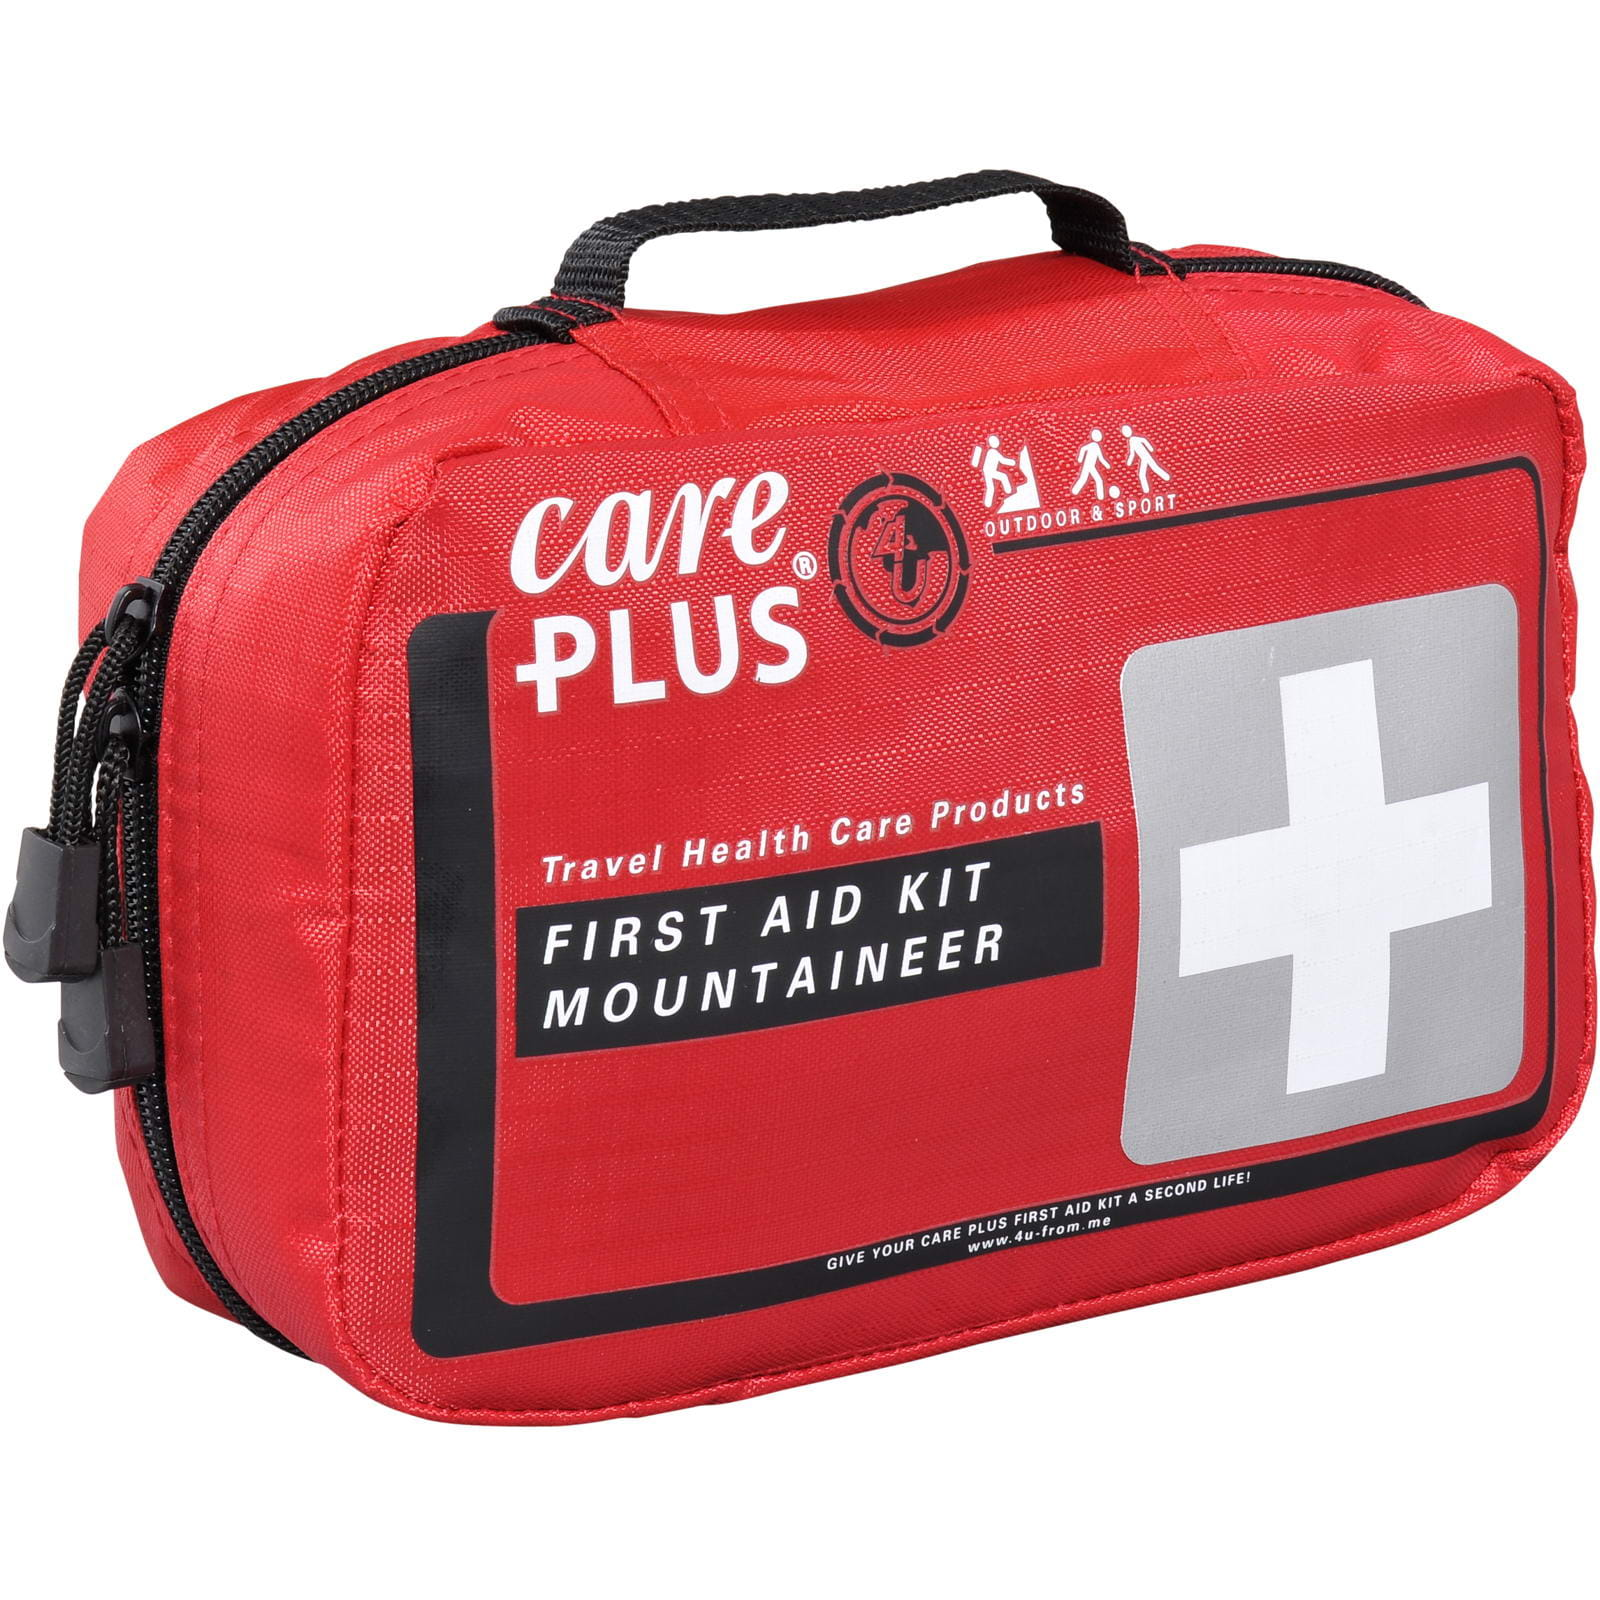 Care Plus First Aid Kit Mountaineer - Bild 1